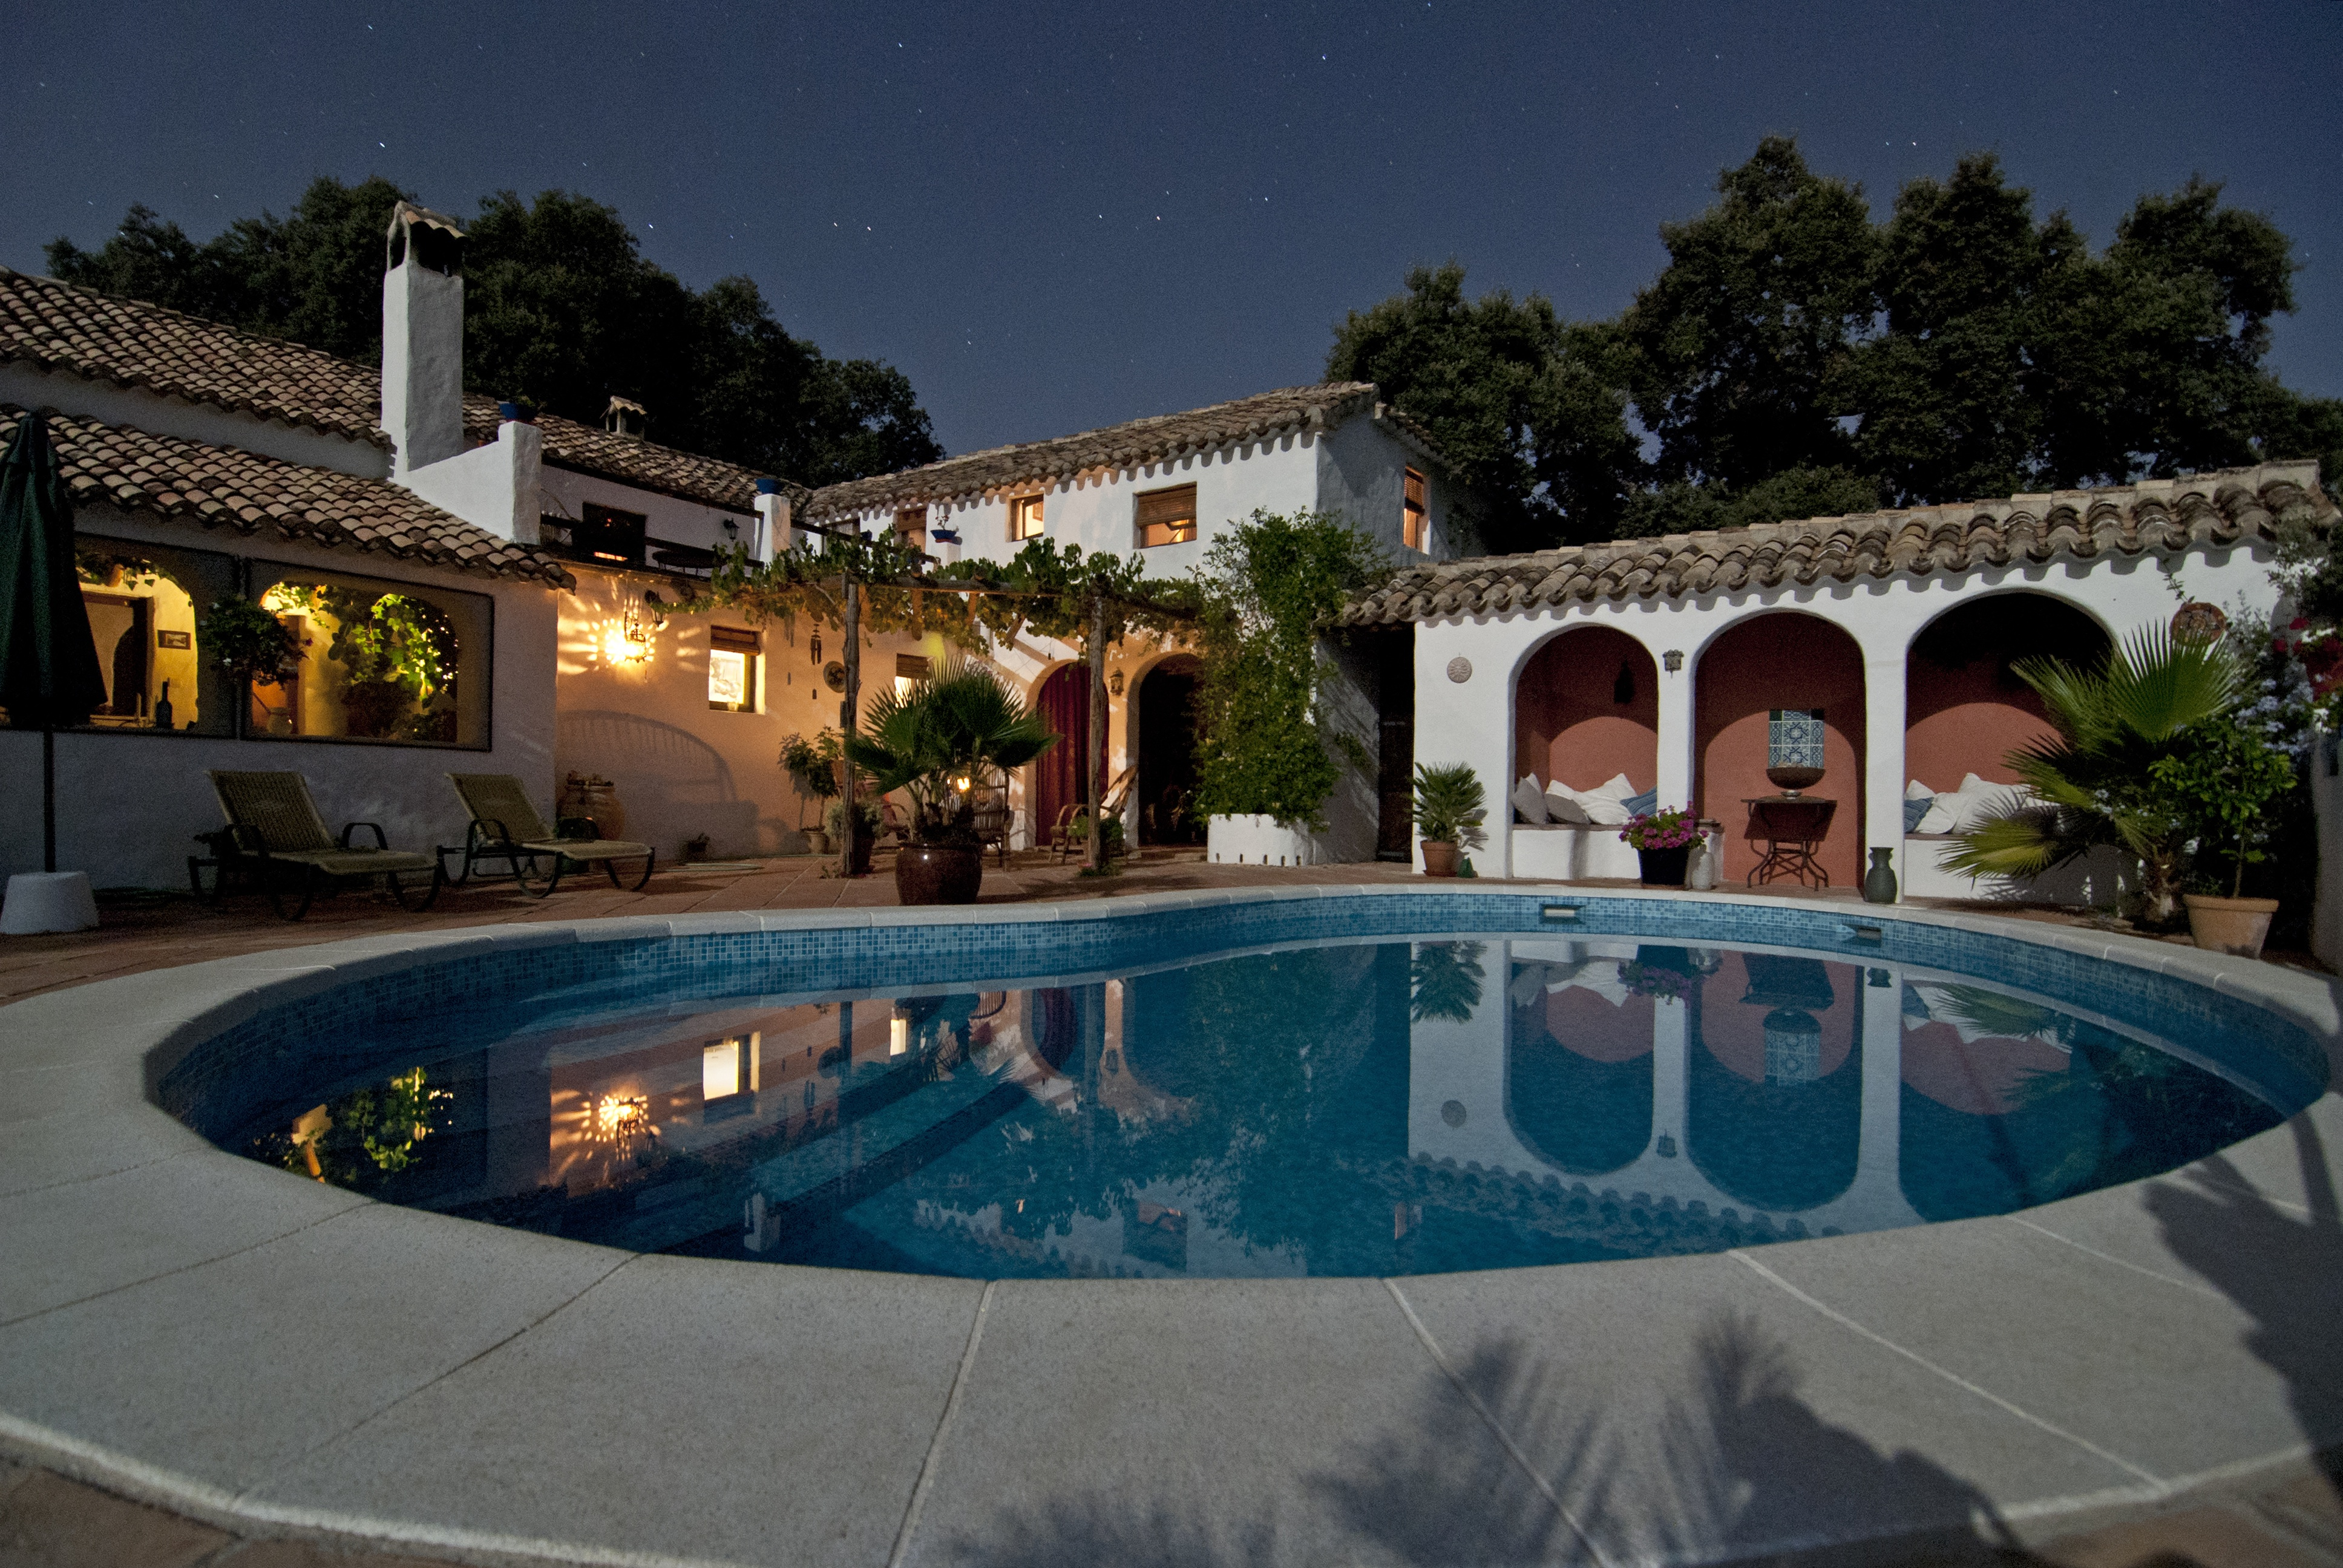 Image of a pool and mansion illustrates the concept of sellout